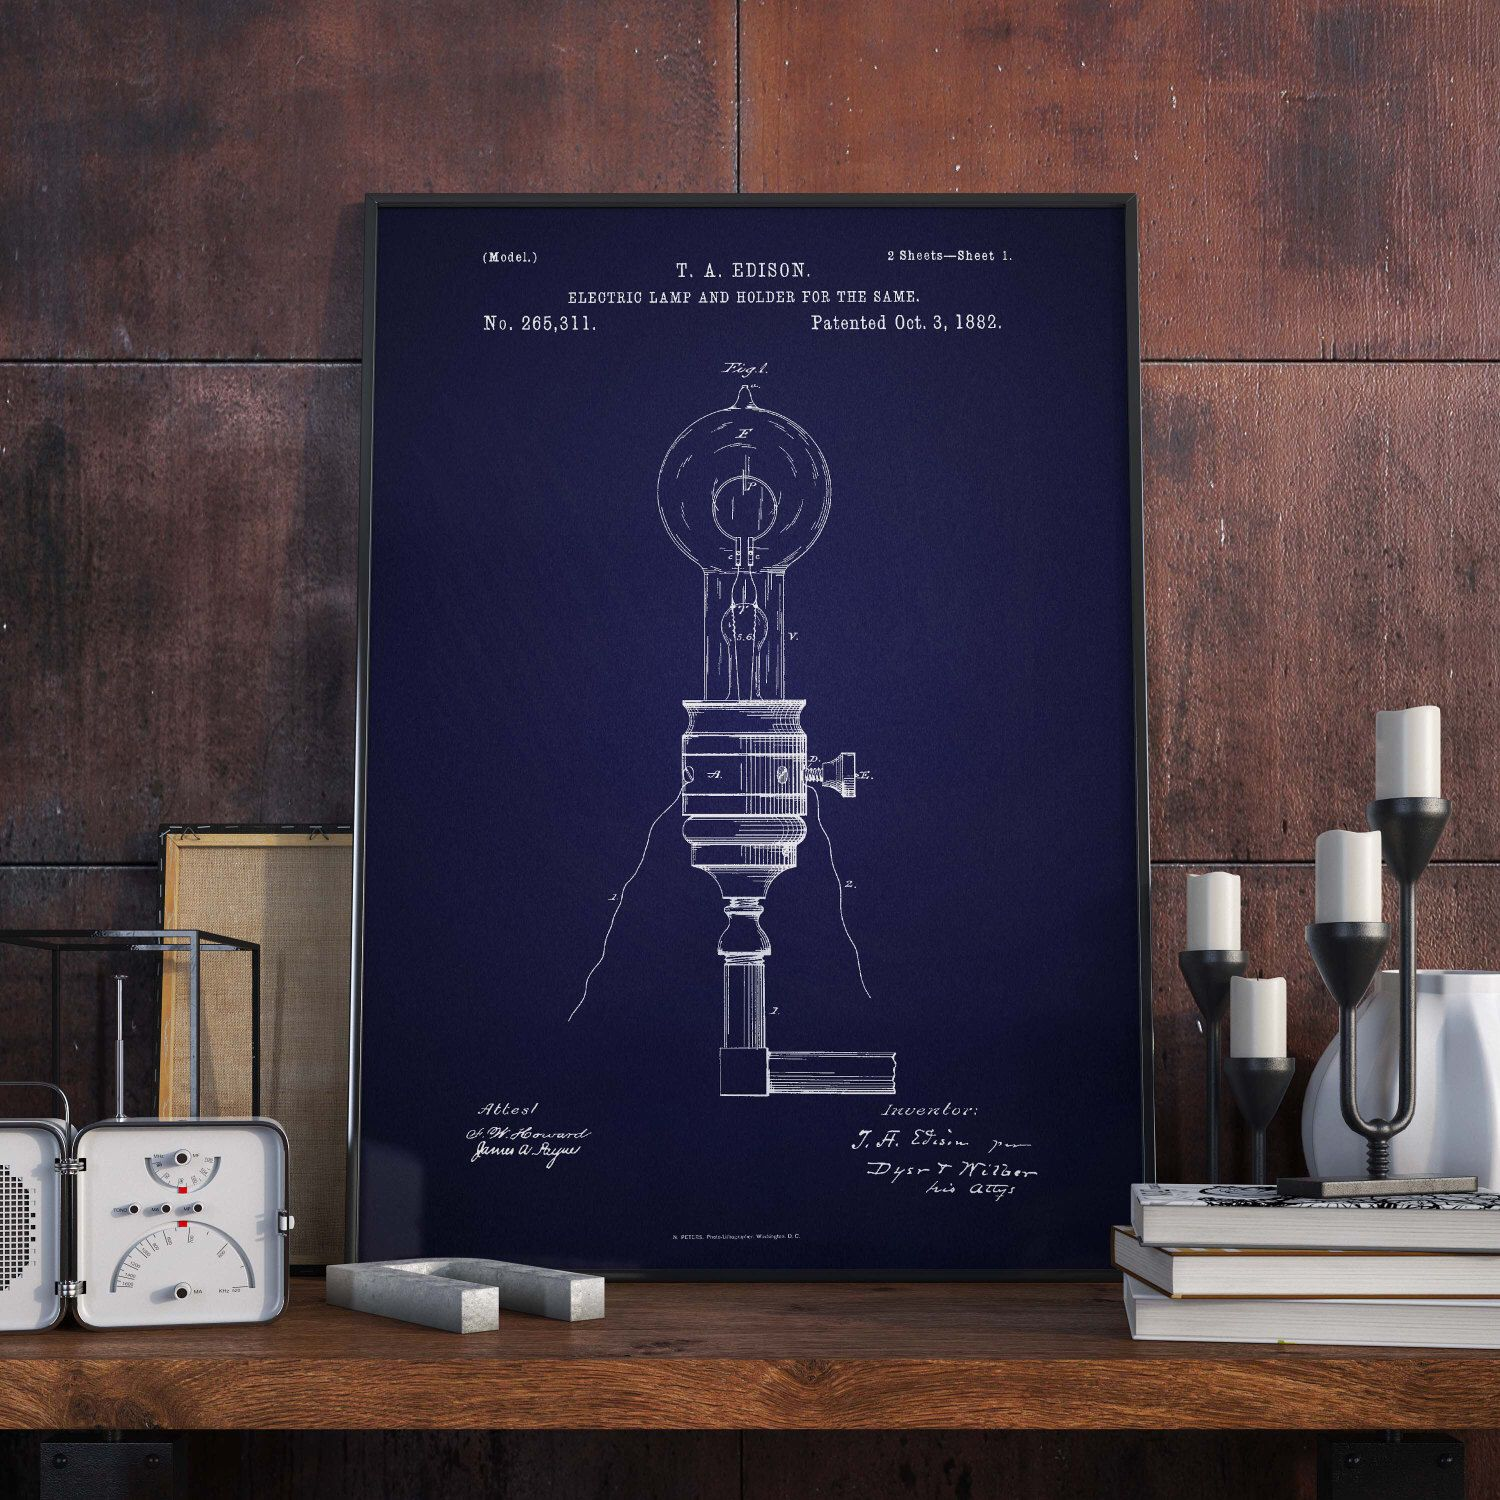 Electric Lamp Patent Print Edison s Electric LampPatent Poster